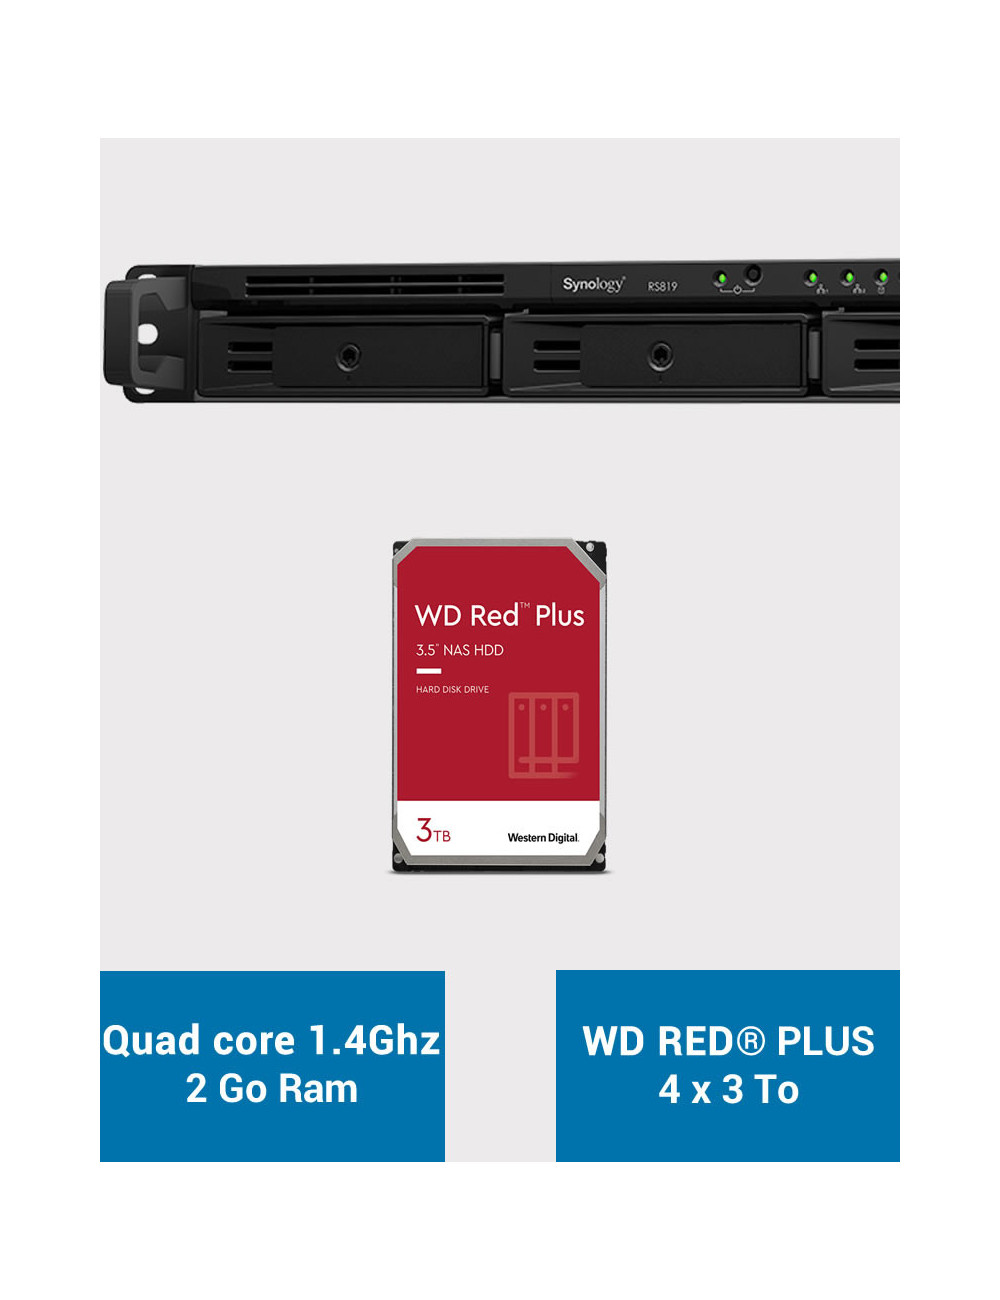 Synology RS819 Serveur NAS WD RED PLUS 12To (4x3To)